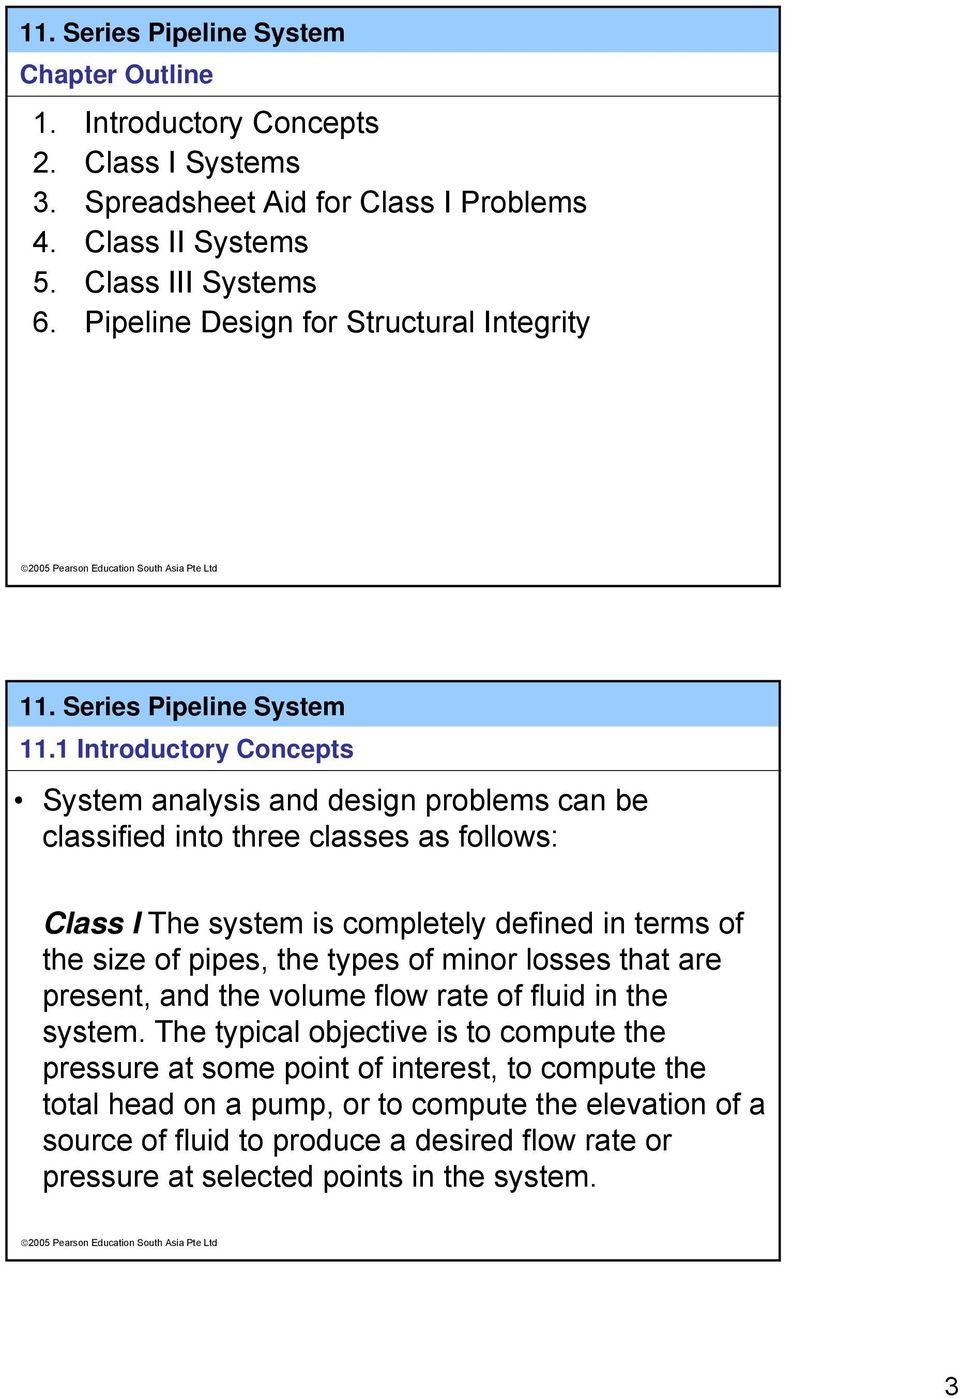 1 Introductory Concepts System analysis and design problems can be classified into three classes as follows: Class I The system is completely defined in terms of the size of